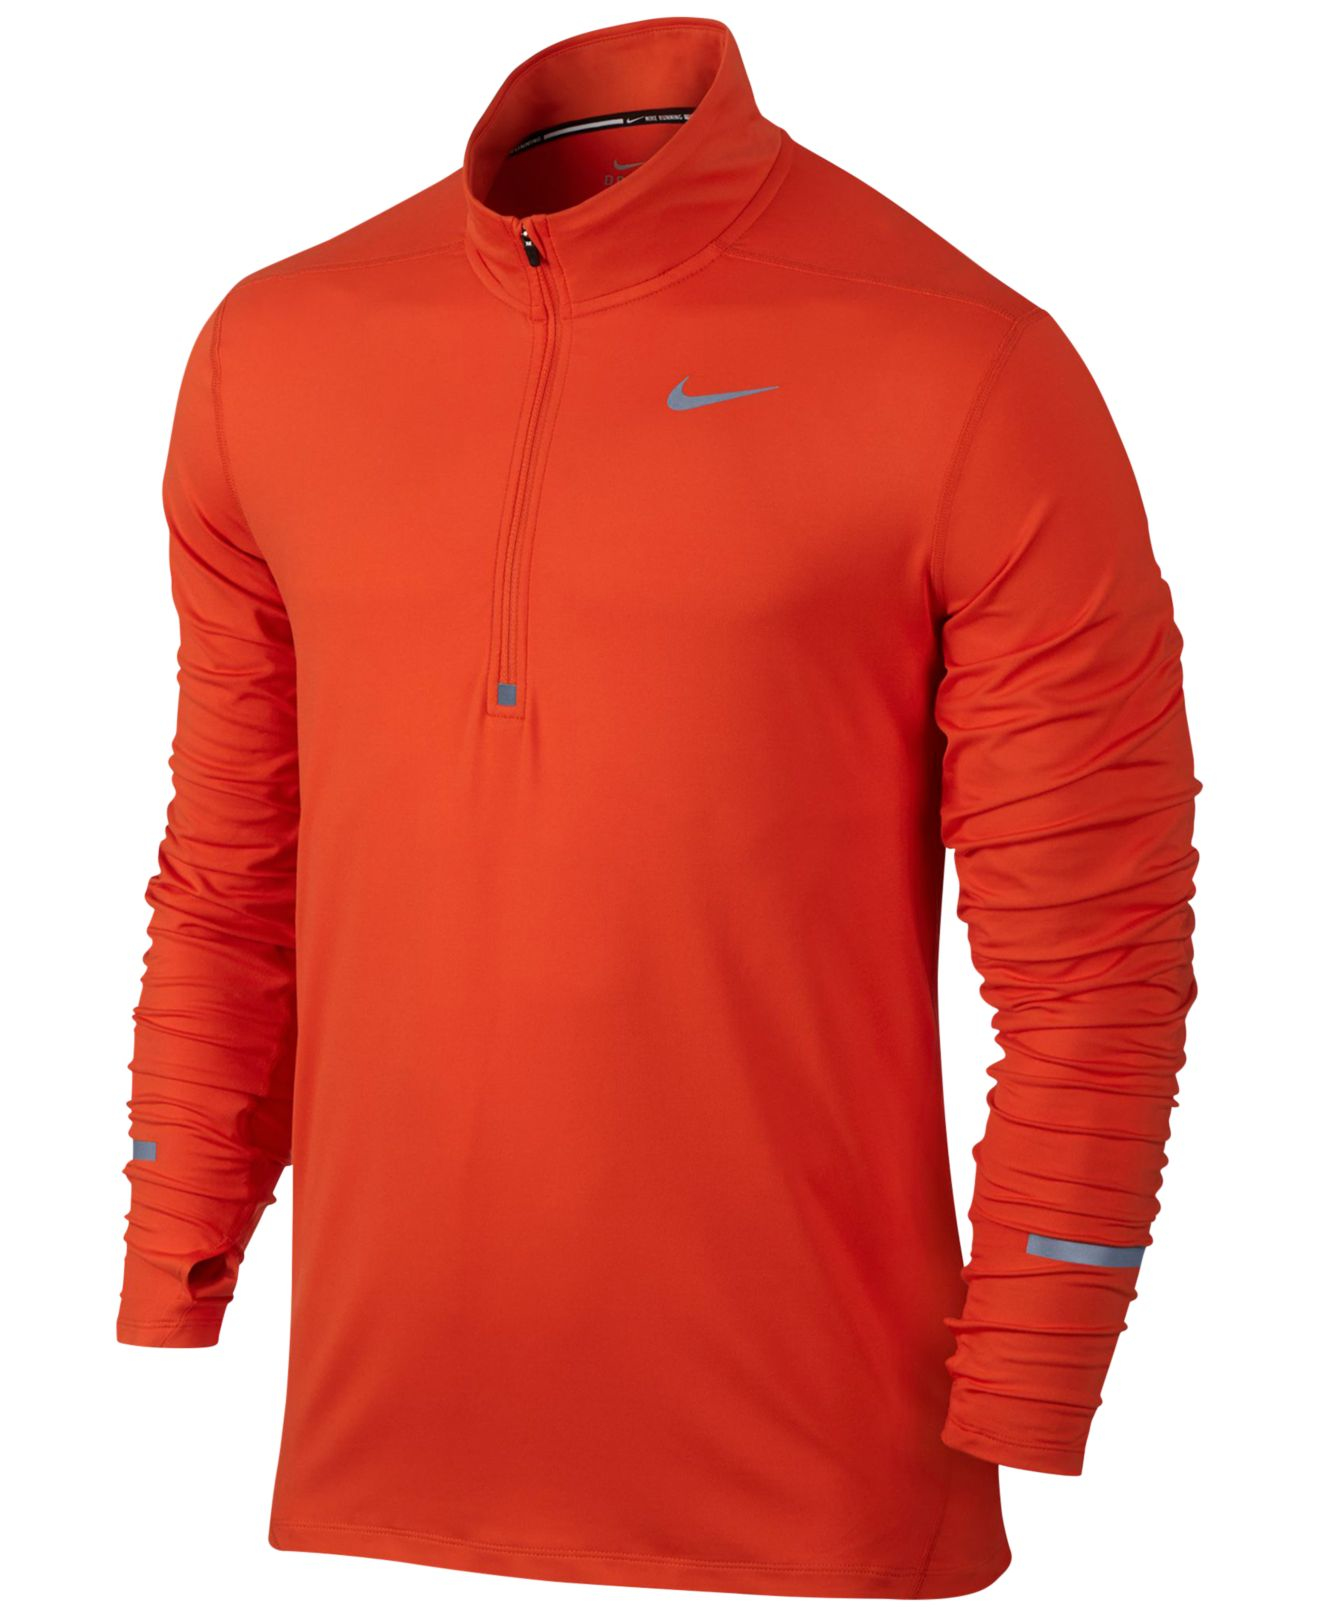 nike element dri fit half zip running shirt in orange for